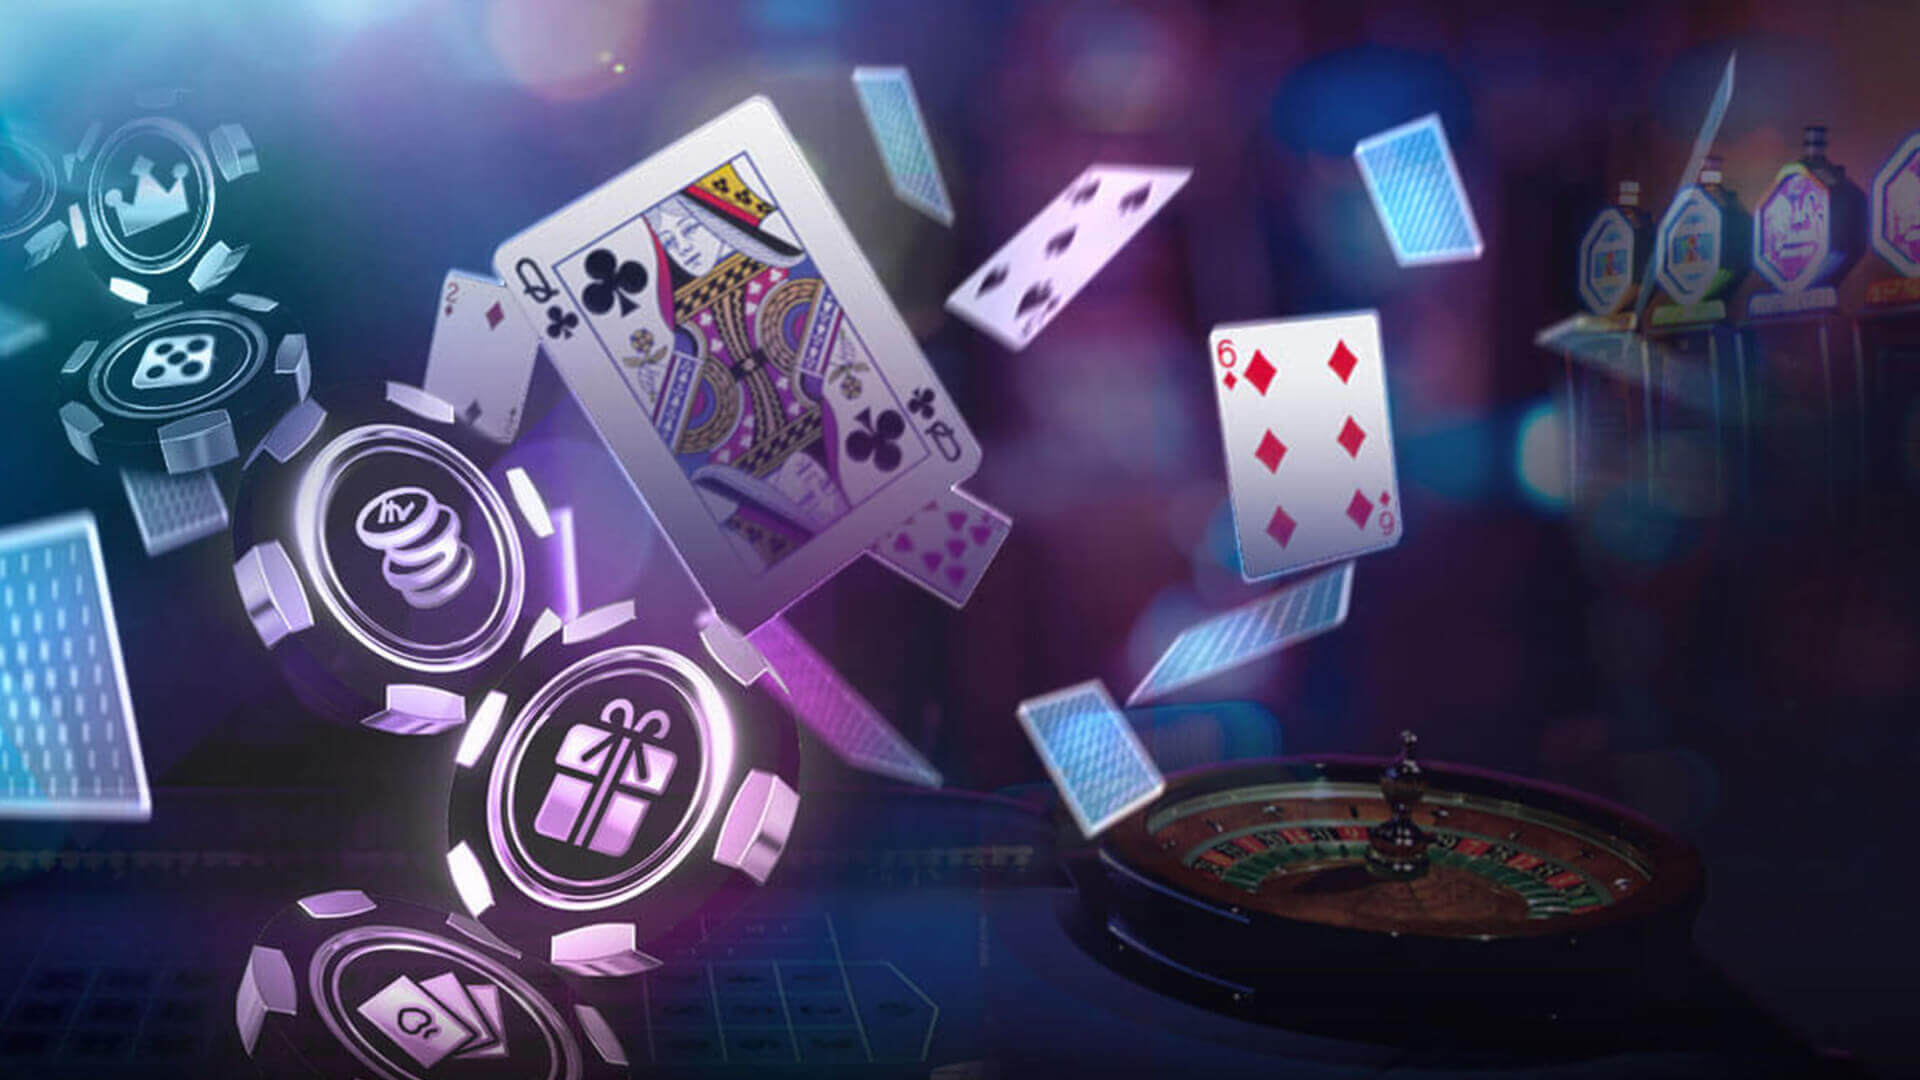 What Games Can You Play In Dg Casino Website?